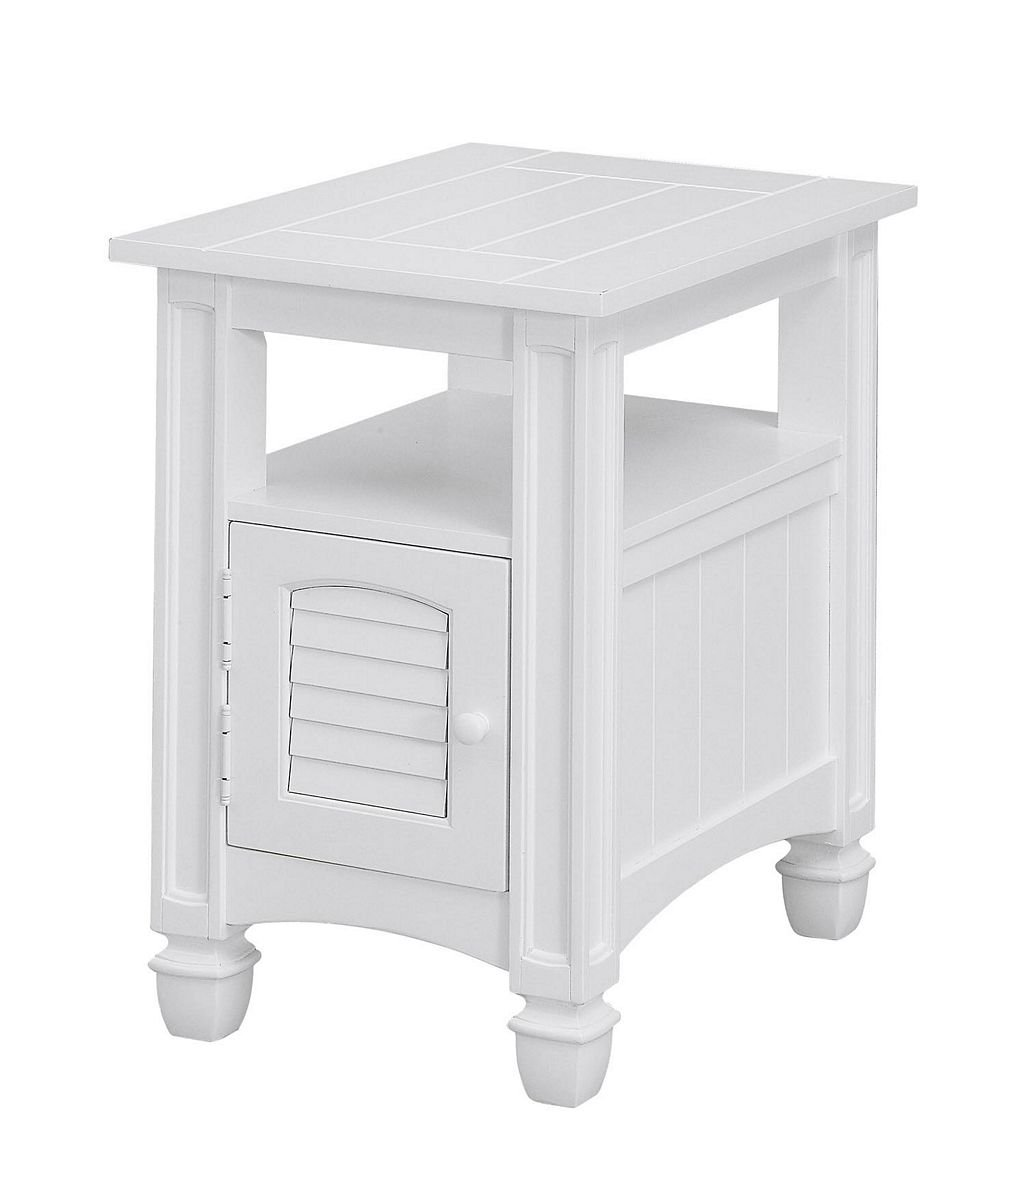 treasure trove accents harbor towne chairside sktl accent end table white kitchen dining farmhouse style blue and lamps large with storage best dorm room ideas ikea wooden bench